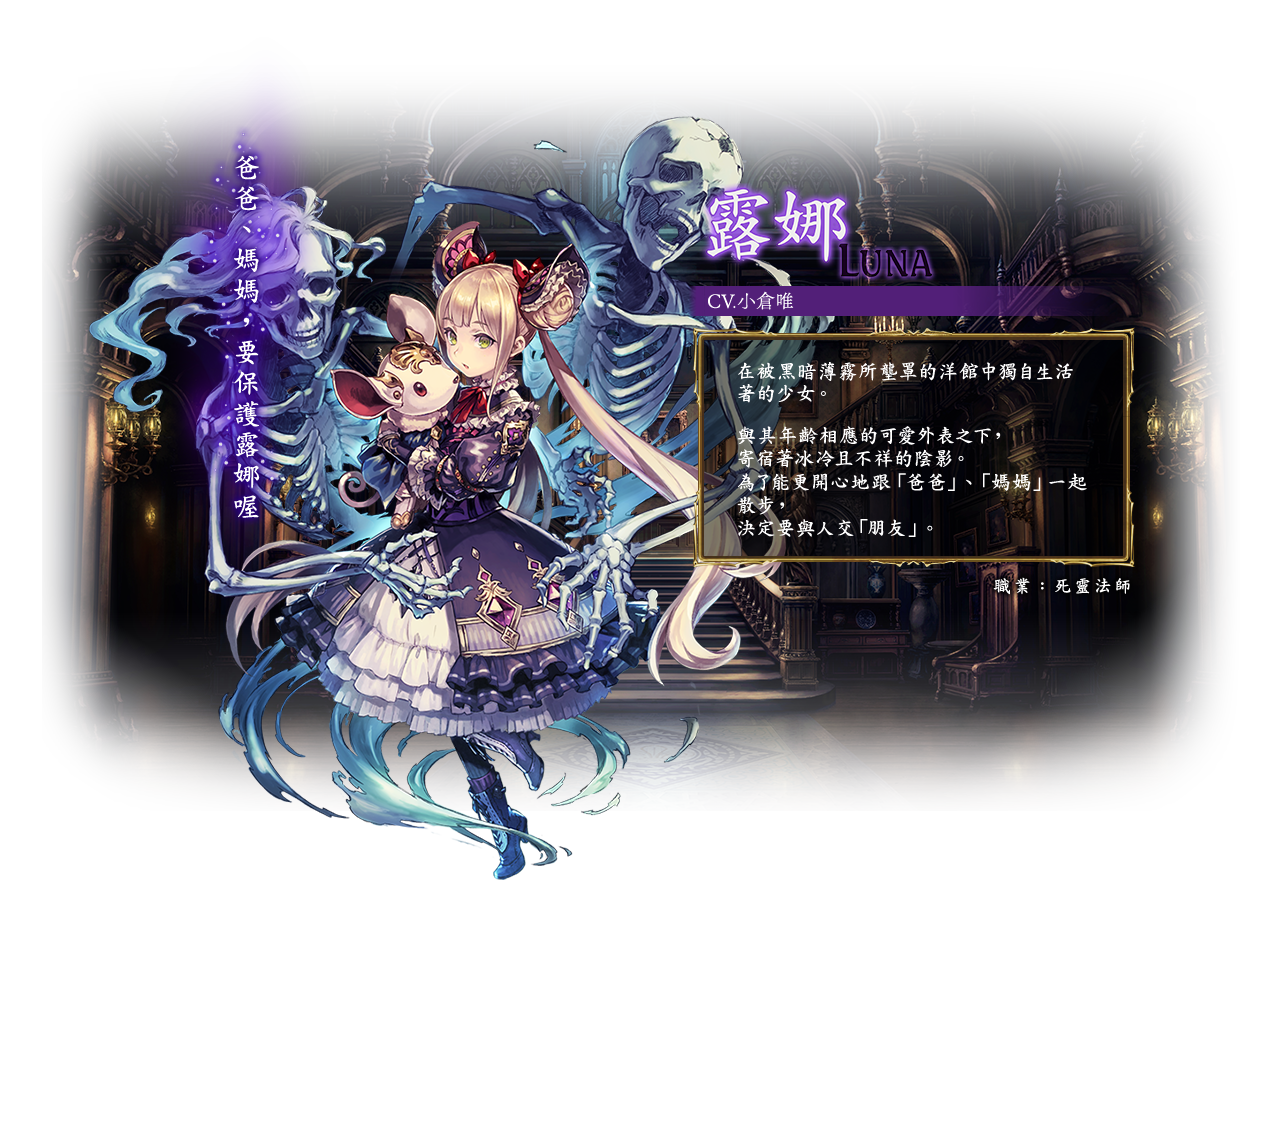 Luna / Class: Shadowcraft / Luna is a troubled child who lives in a dark, distant mansion. She finally decides to venture out into the world, hoping to find new playmates.